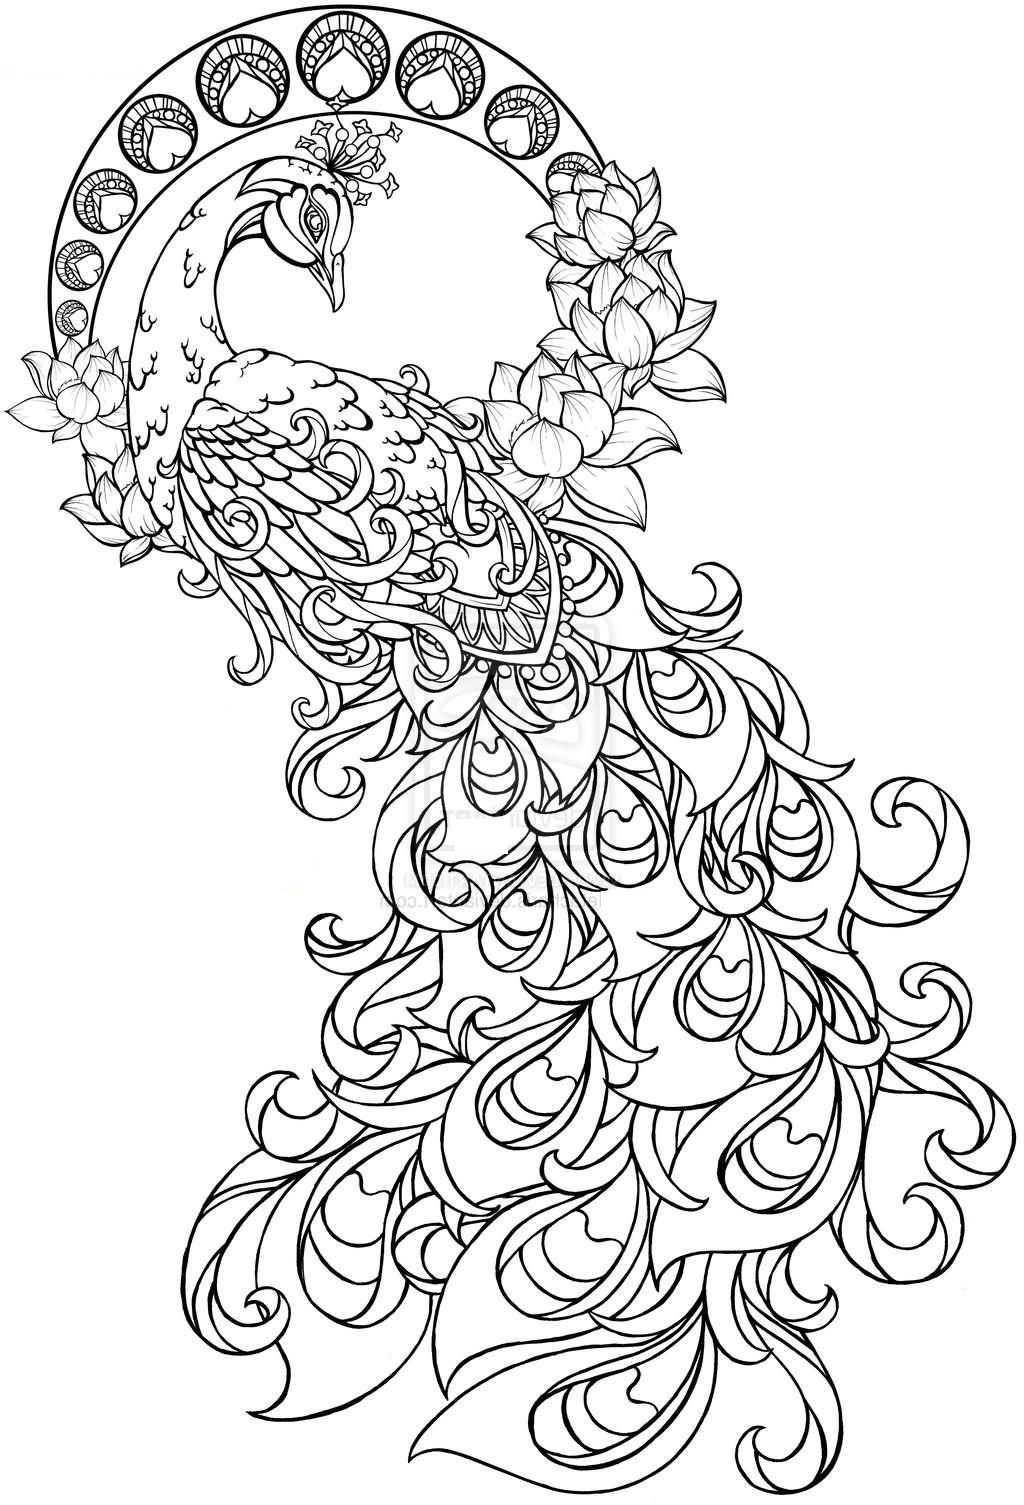 This Beautiful Large Peacock Paisley Pattern Tattoo Design Is